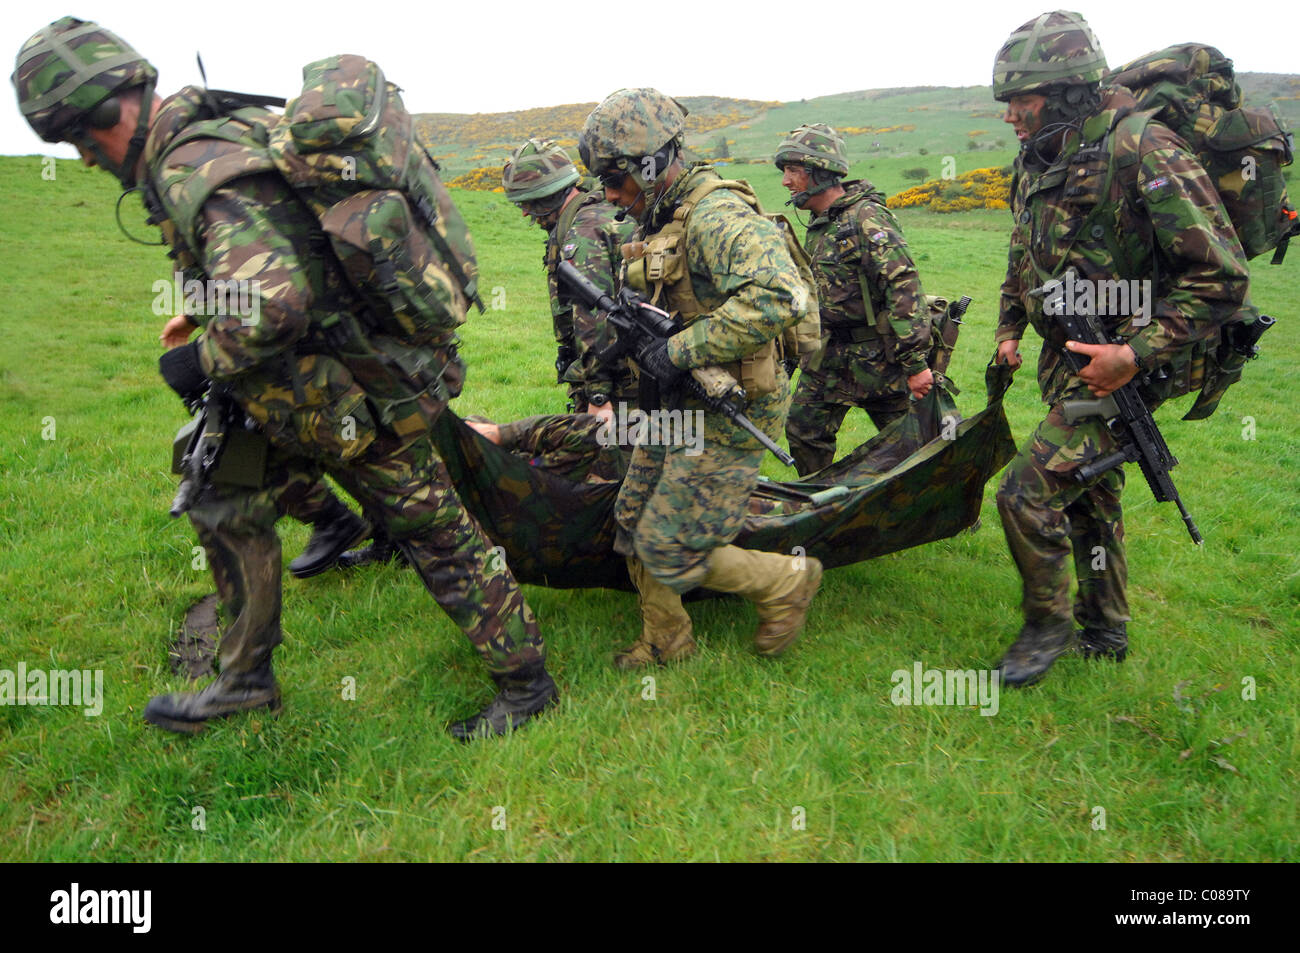 JOINT WARRIOR 09-1 is a major exercise involving all three UK services and 12 invited NATO and Allied Nations. - Stock Image